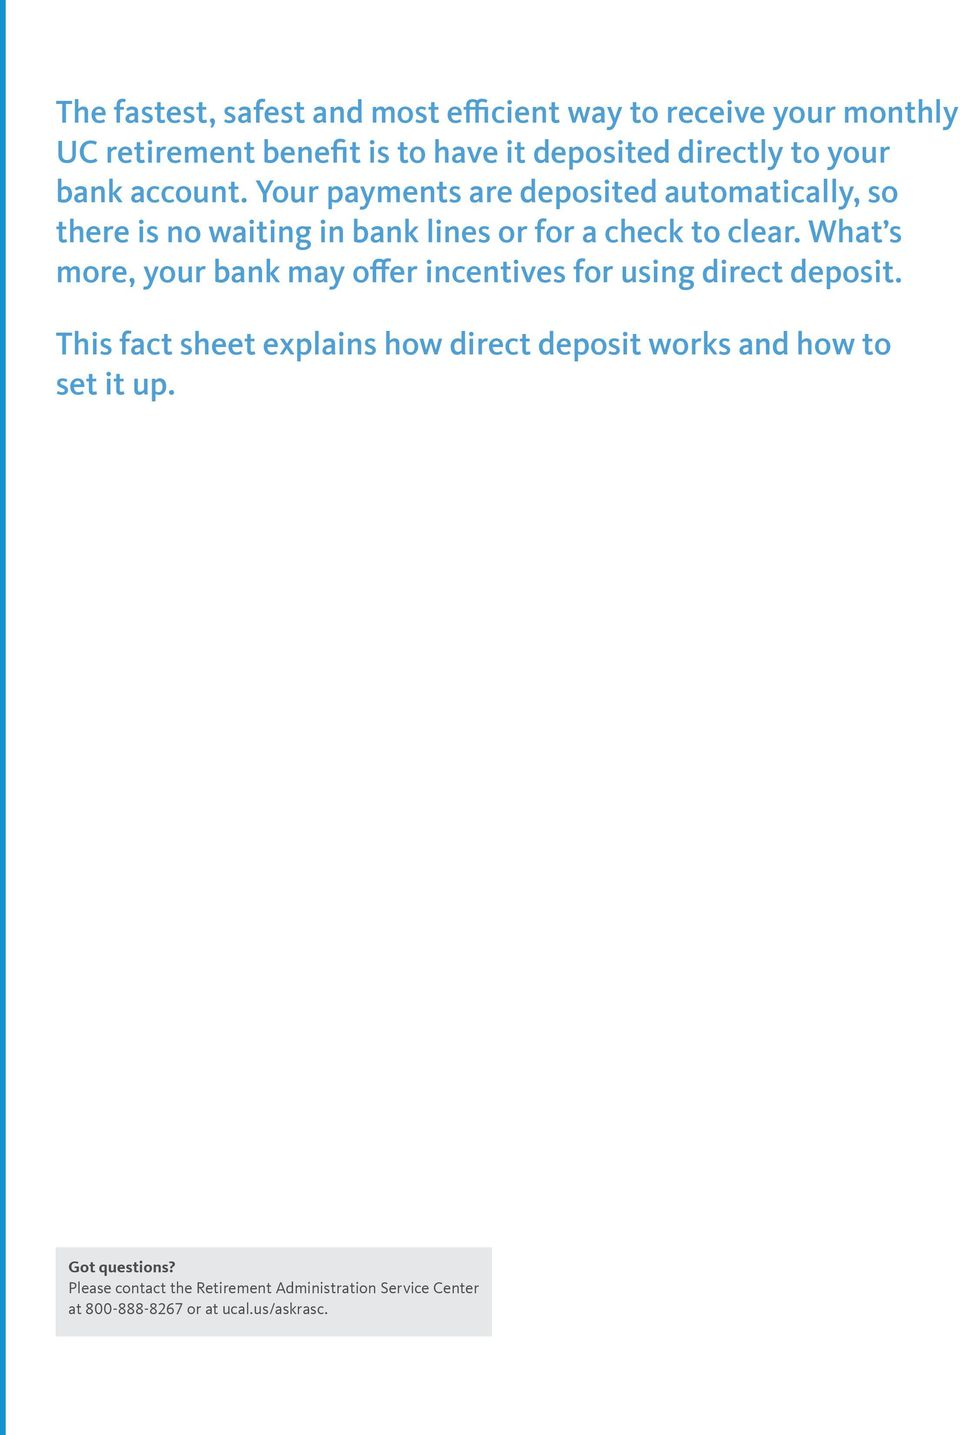 What s more, your bank may offer incentives for using direct deposit.